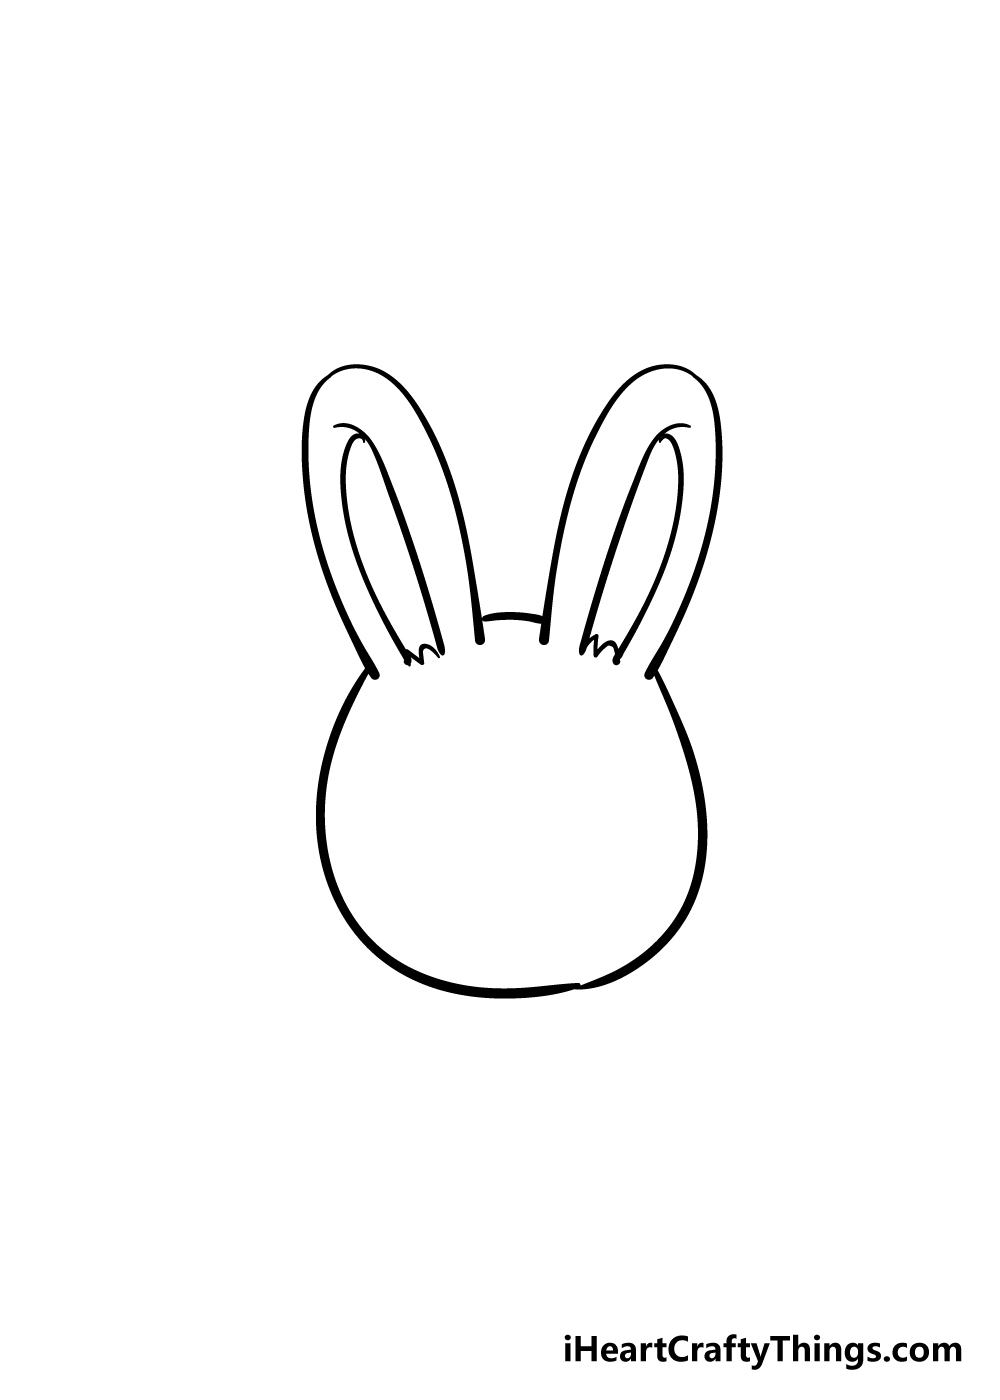 bunny face drawing step 3